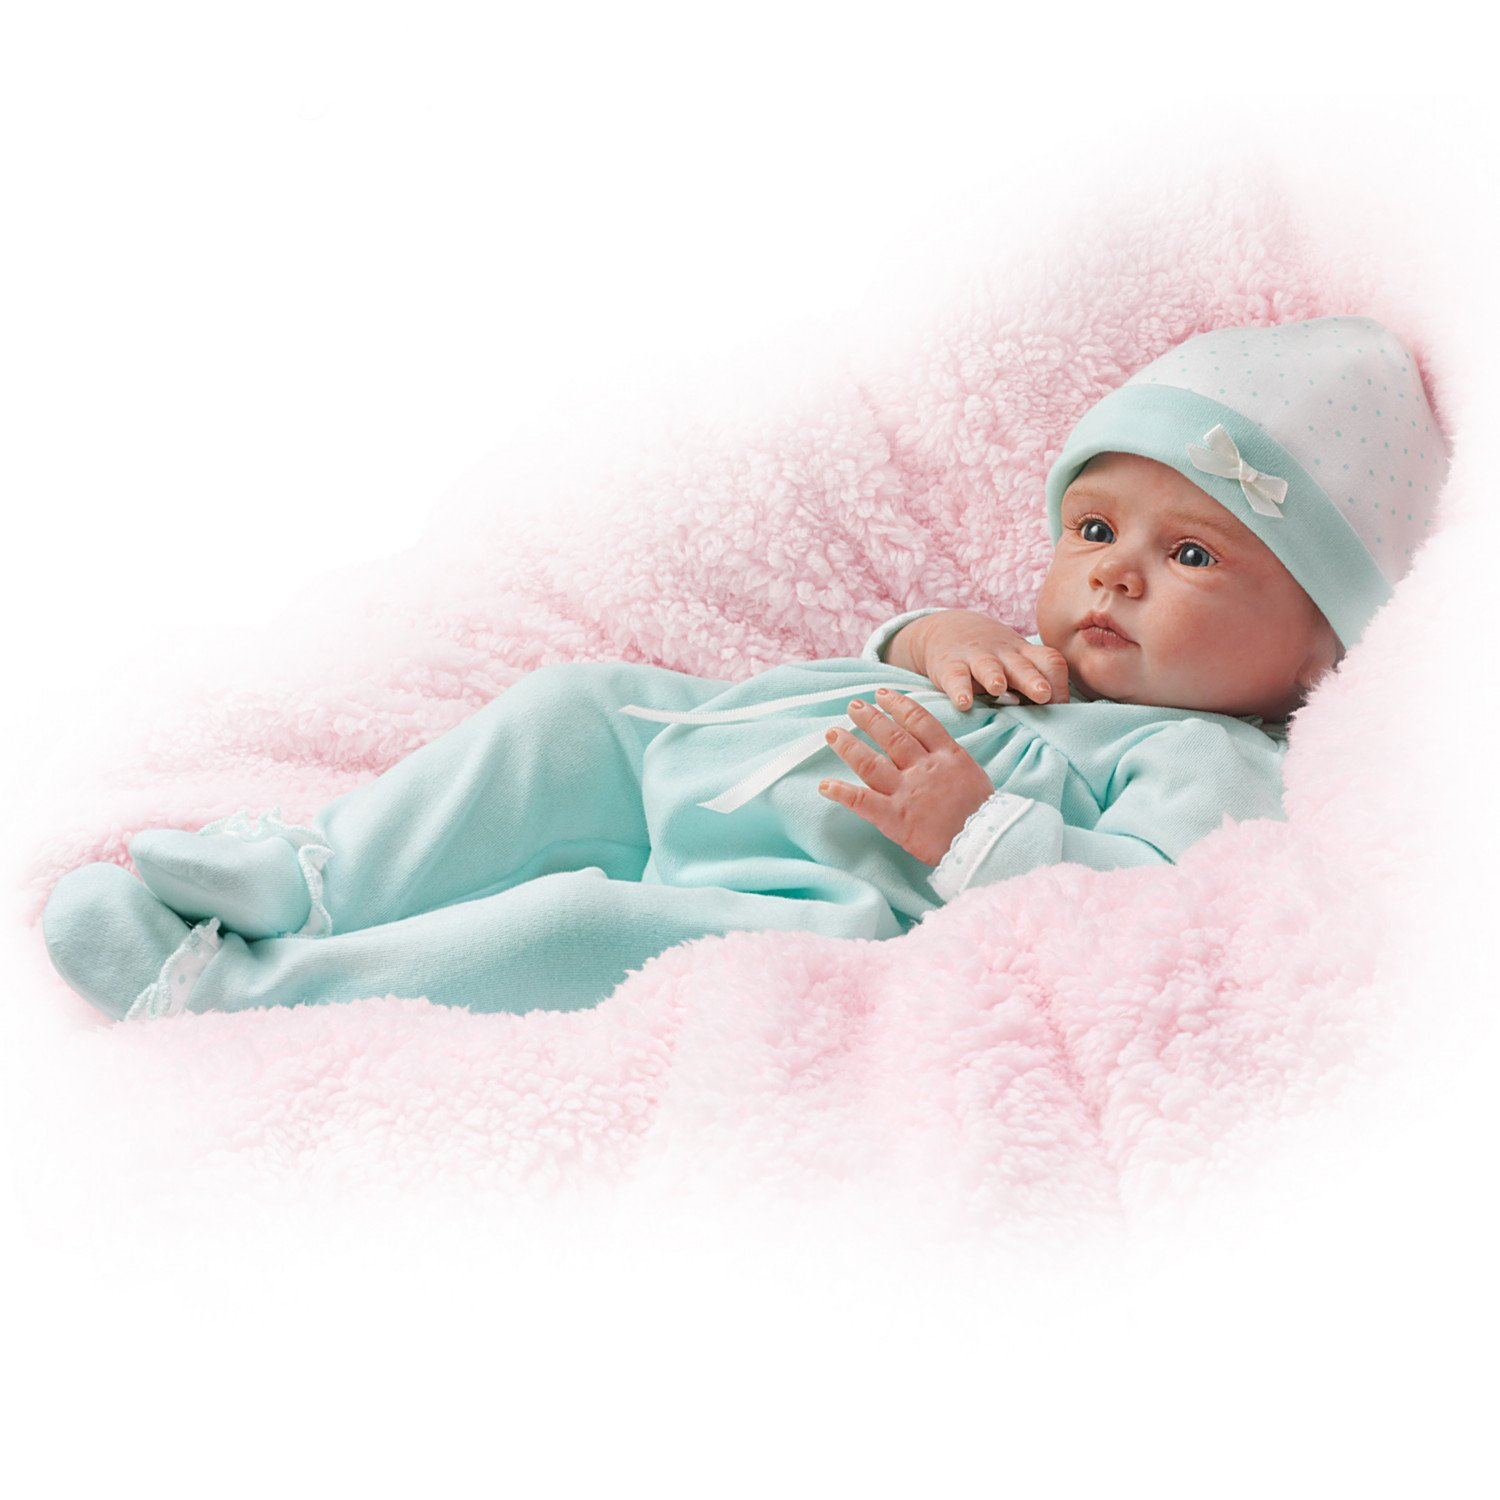 Mayra Garza Realistic Weighted Baby Girl Doll in Sleeper and Cap: Ashton Drake by The Ashton-Drake Galleries by The Ashton-Drake Galleries